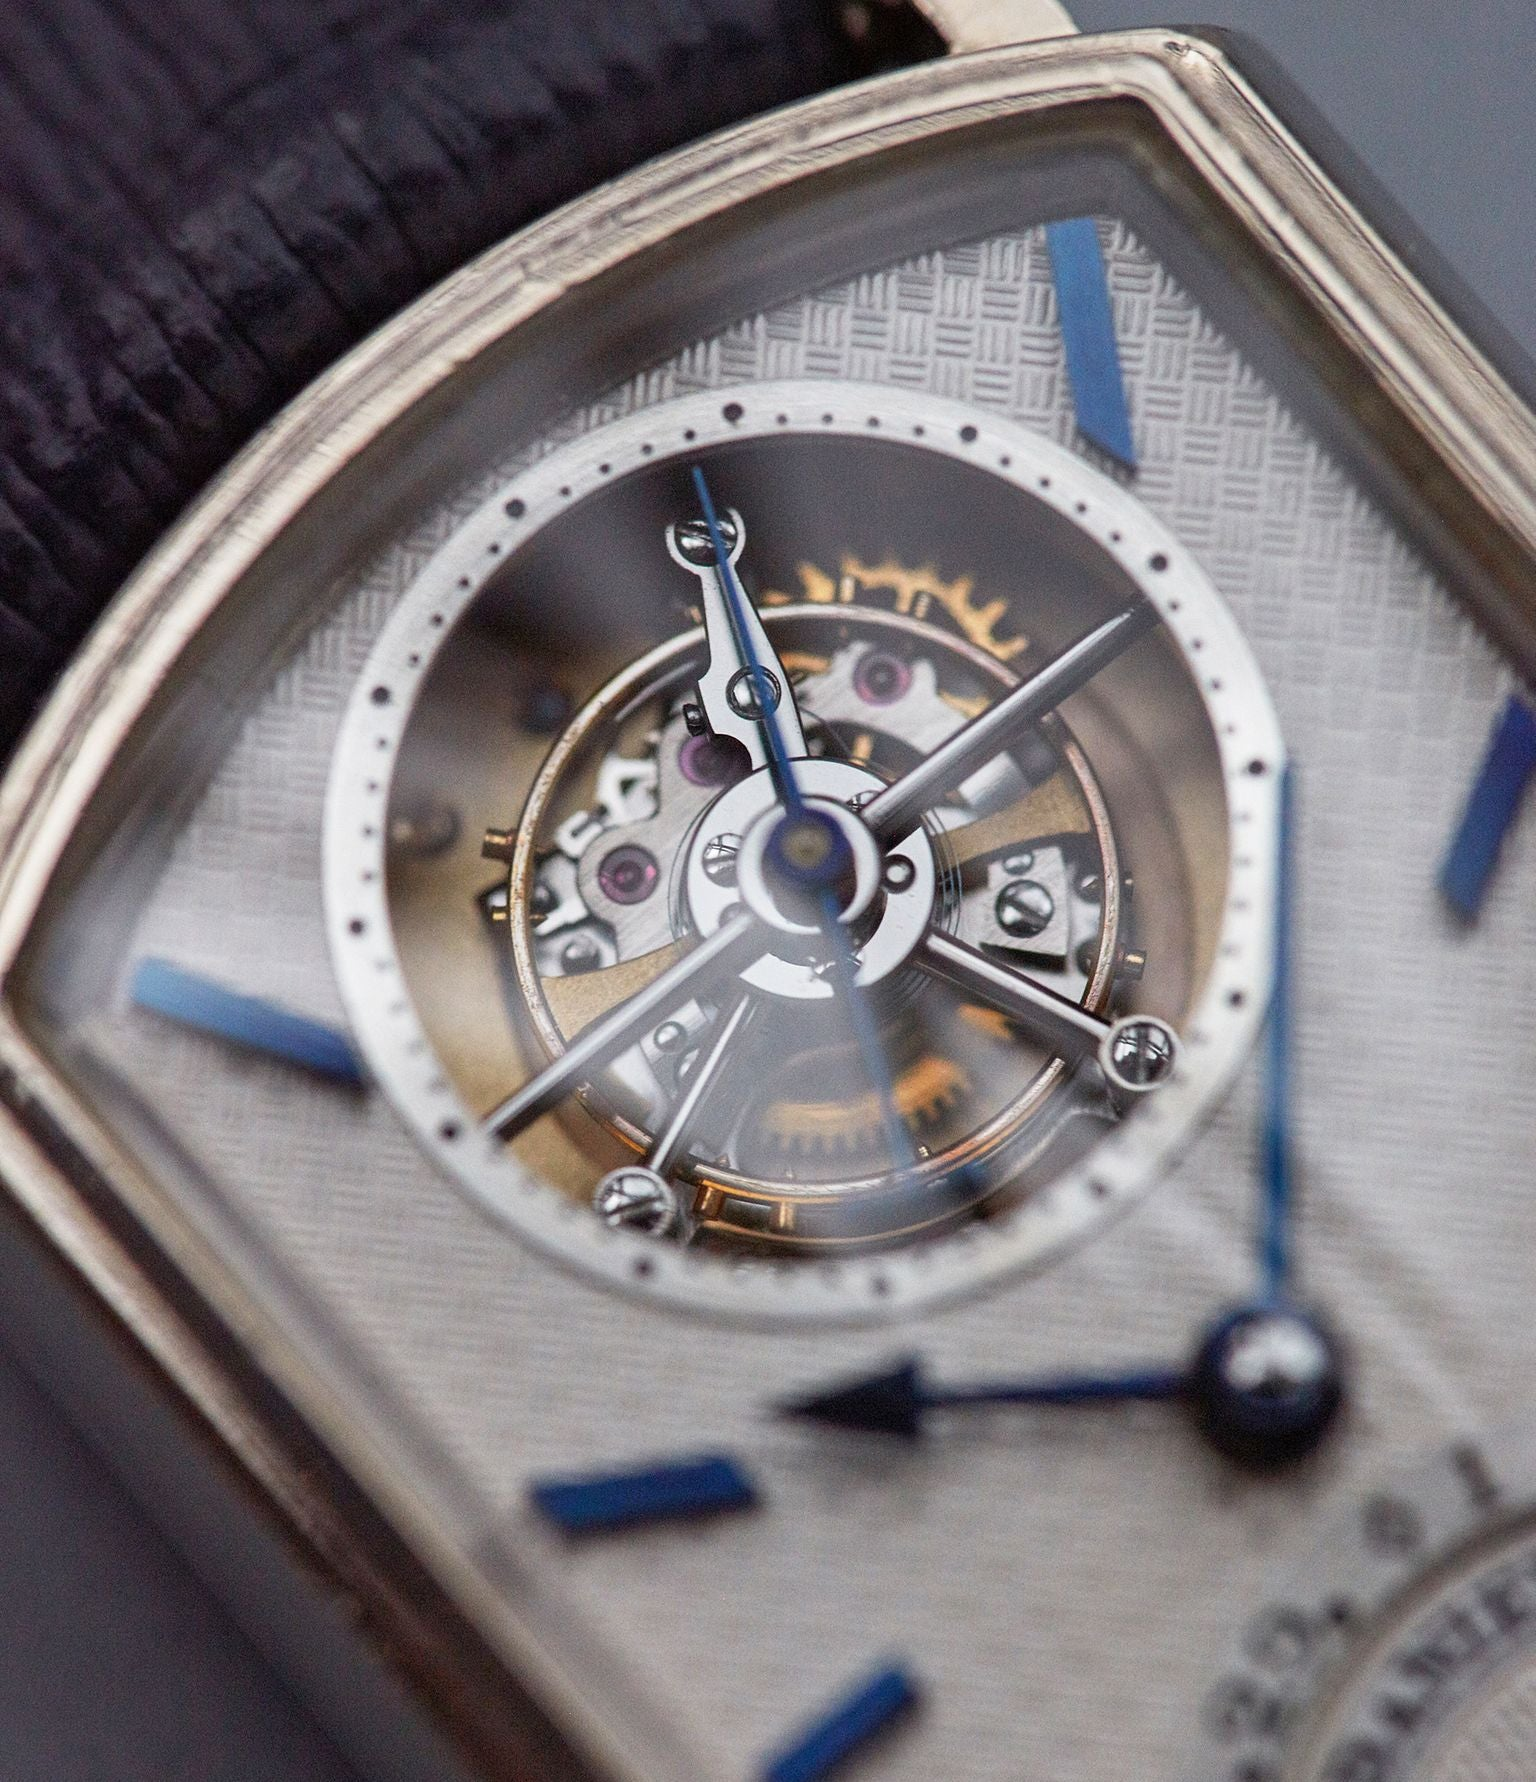 Daniels Blue Tourbillon wristwatch made by Roger Smith for A Collected Man London